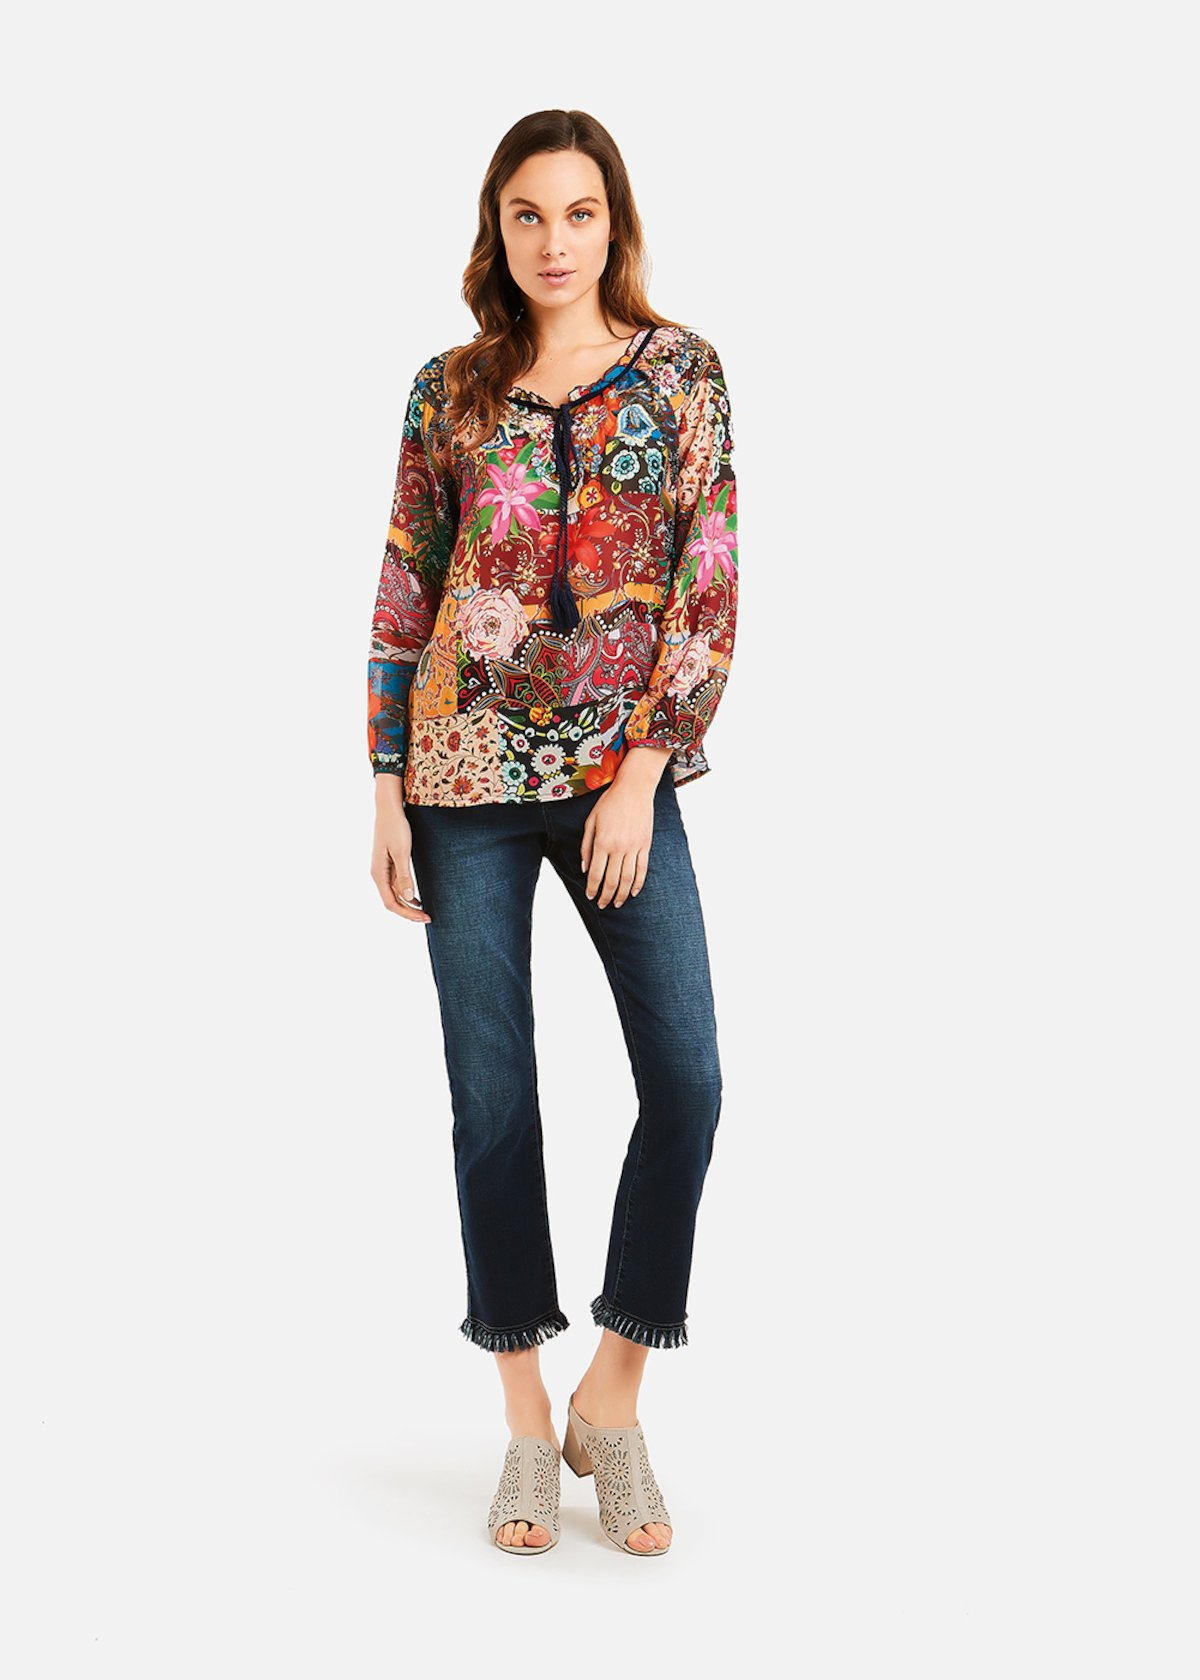 Cristy blouse with embroidery and lanyard - Rouge\ Fantasia